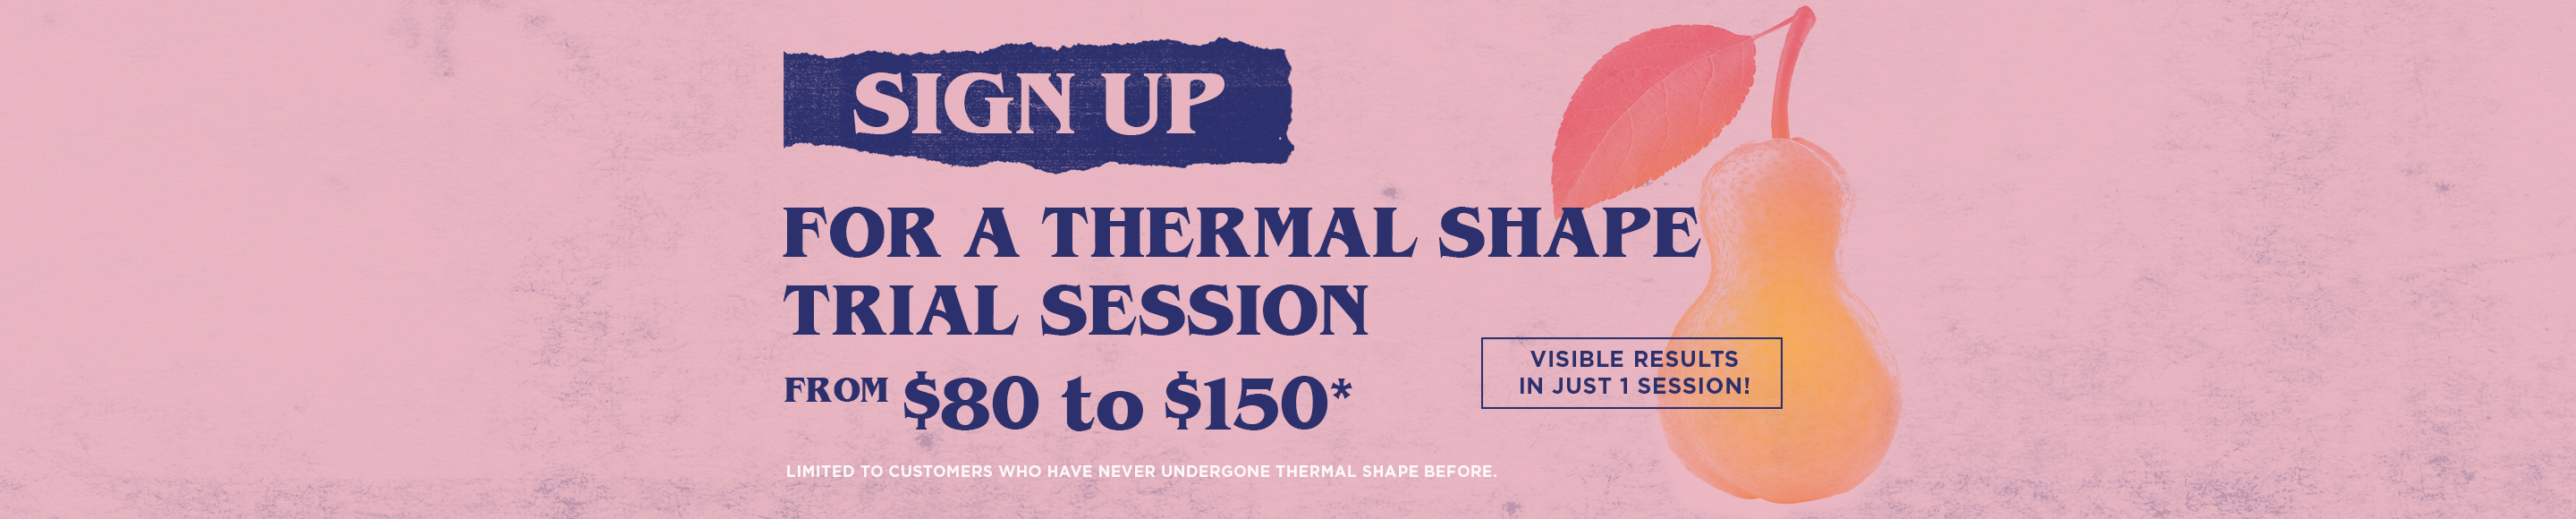 ThermalShape Lead Gen Sign Up